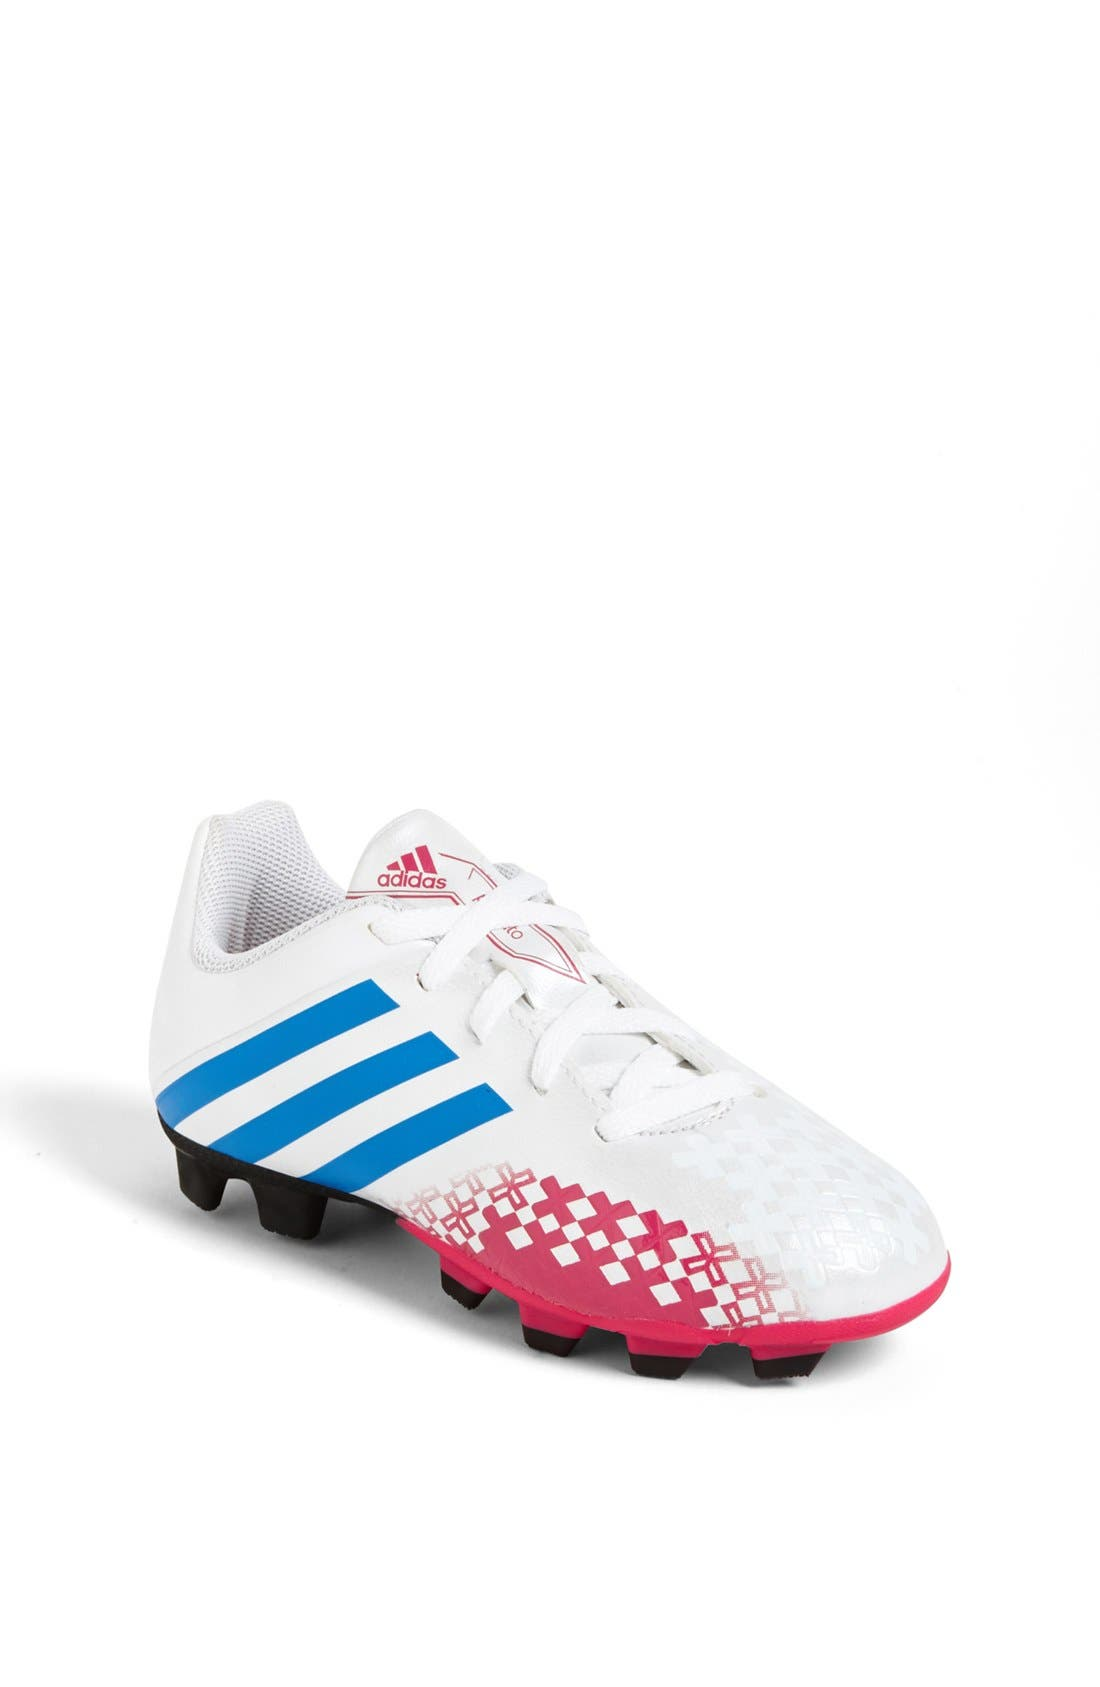 Main Image - adidas 'Predito LZ TRX FG' Soccer Cleat (Toddler, Little Kid & Big Kid)